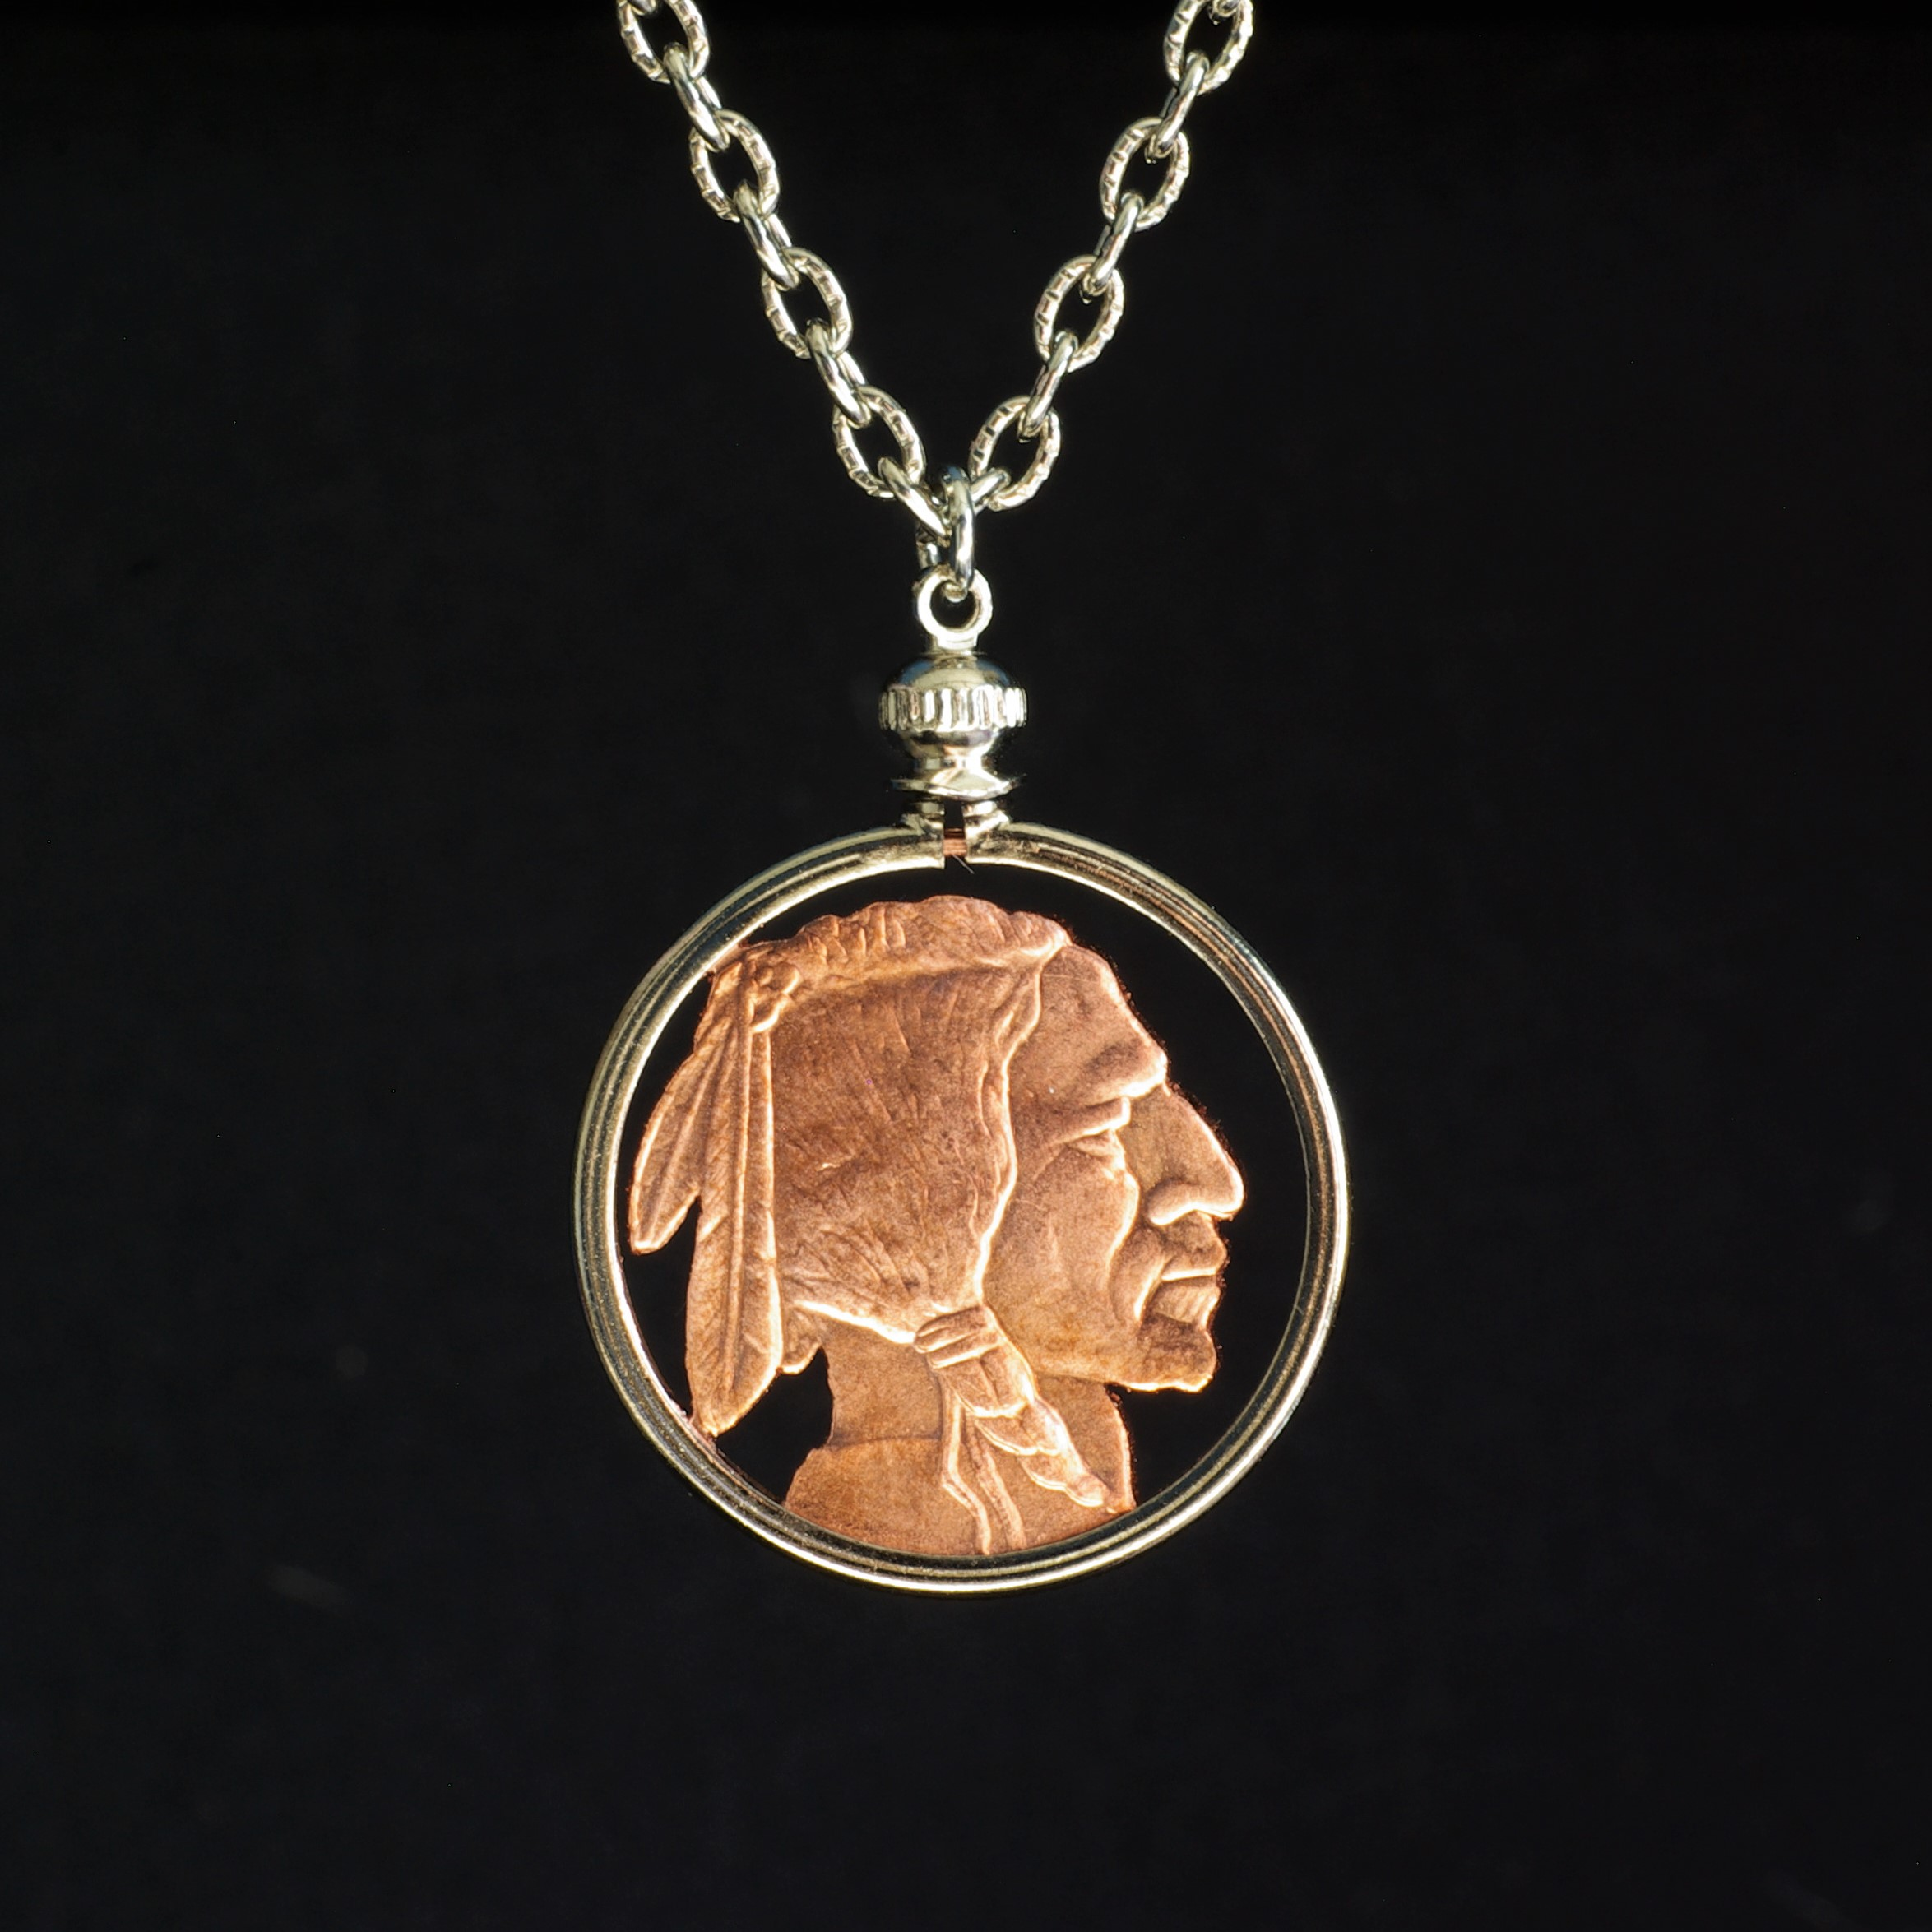 Copper Indian Coin